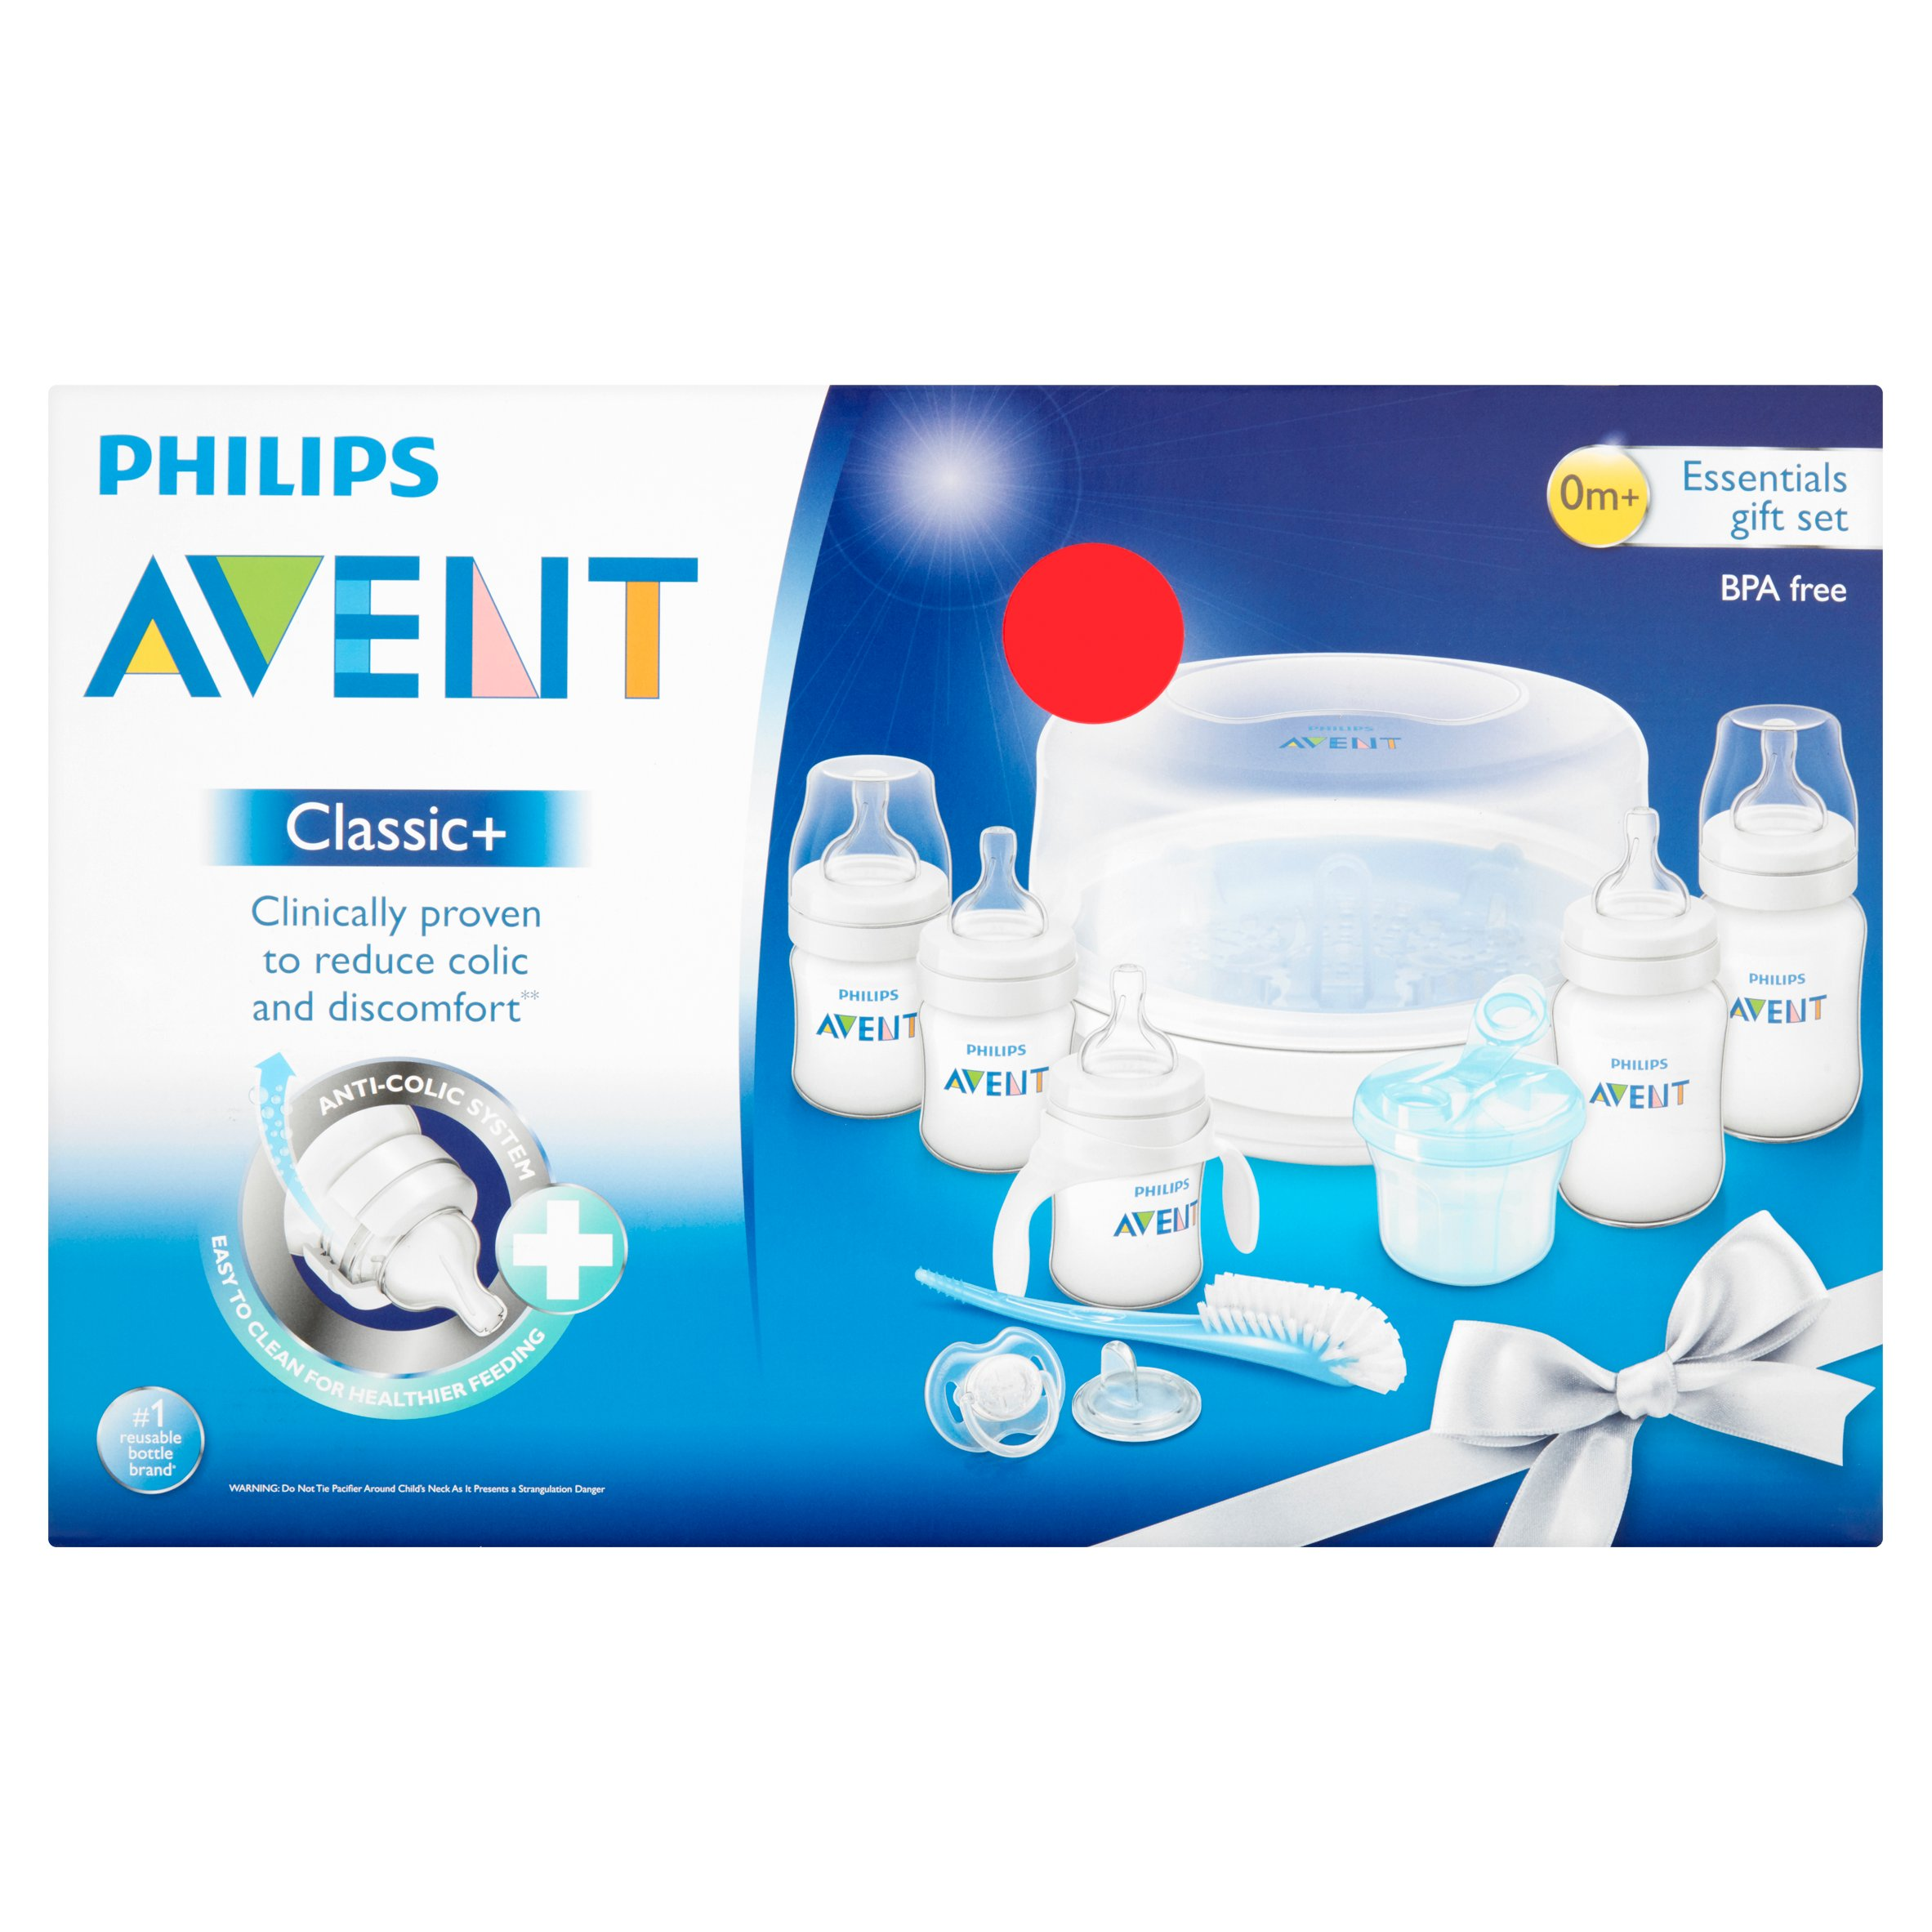 Philips Avent Classic+ 0m+ Essentials Gift Set